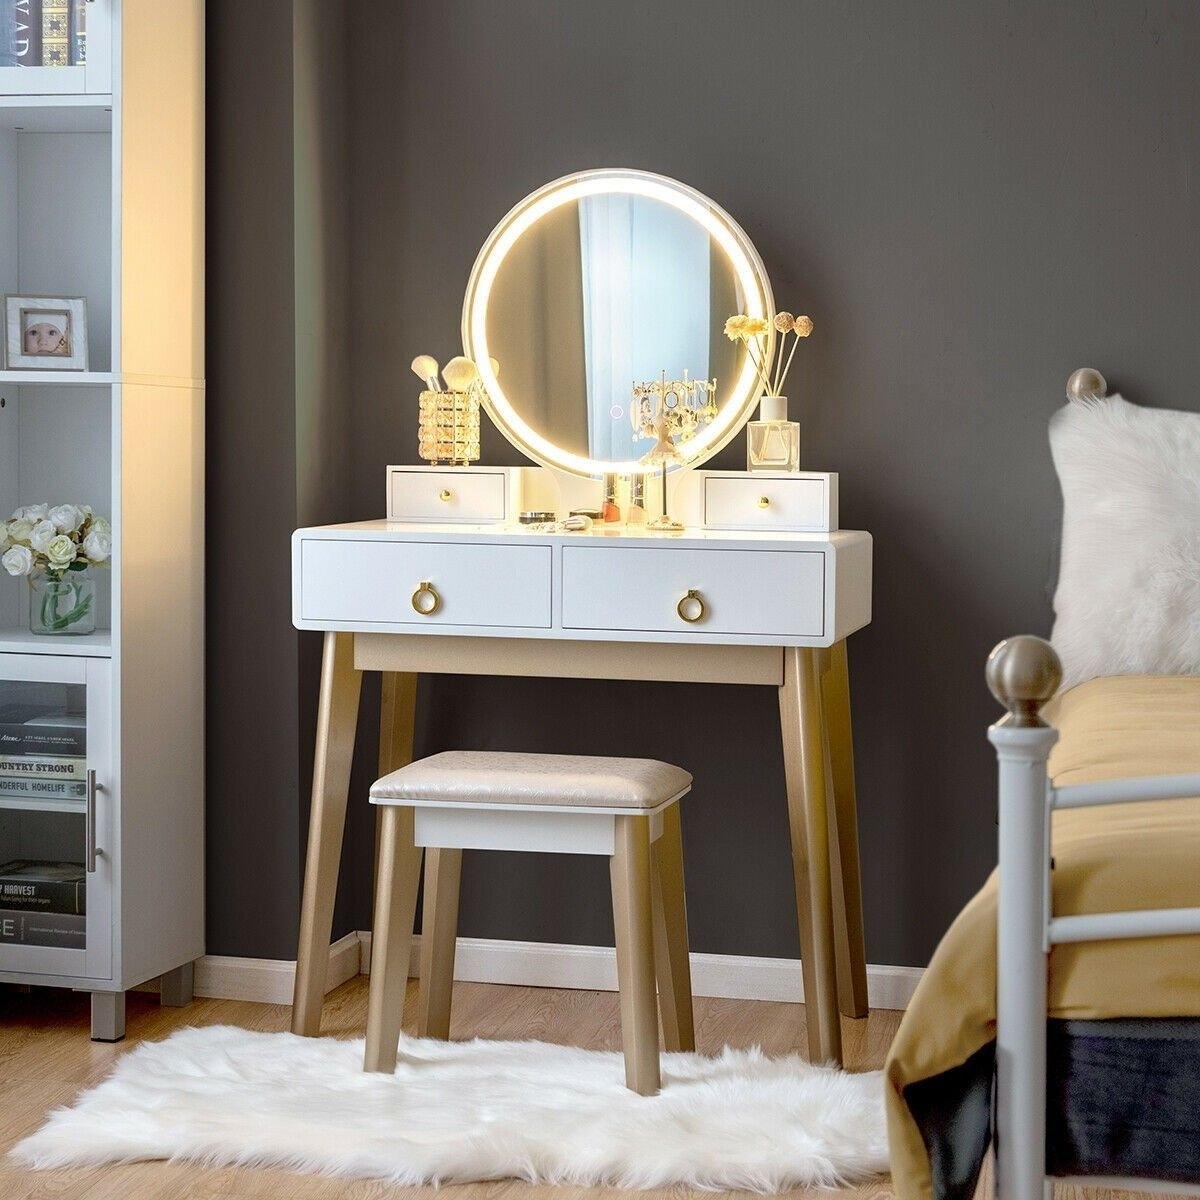 Bedroom Vanity with Light Unique Set 3 Makeup Vanity Table Color Lighting Jewelry Divider